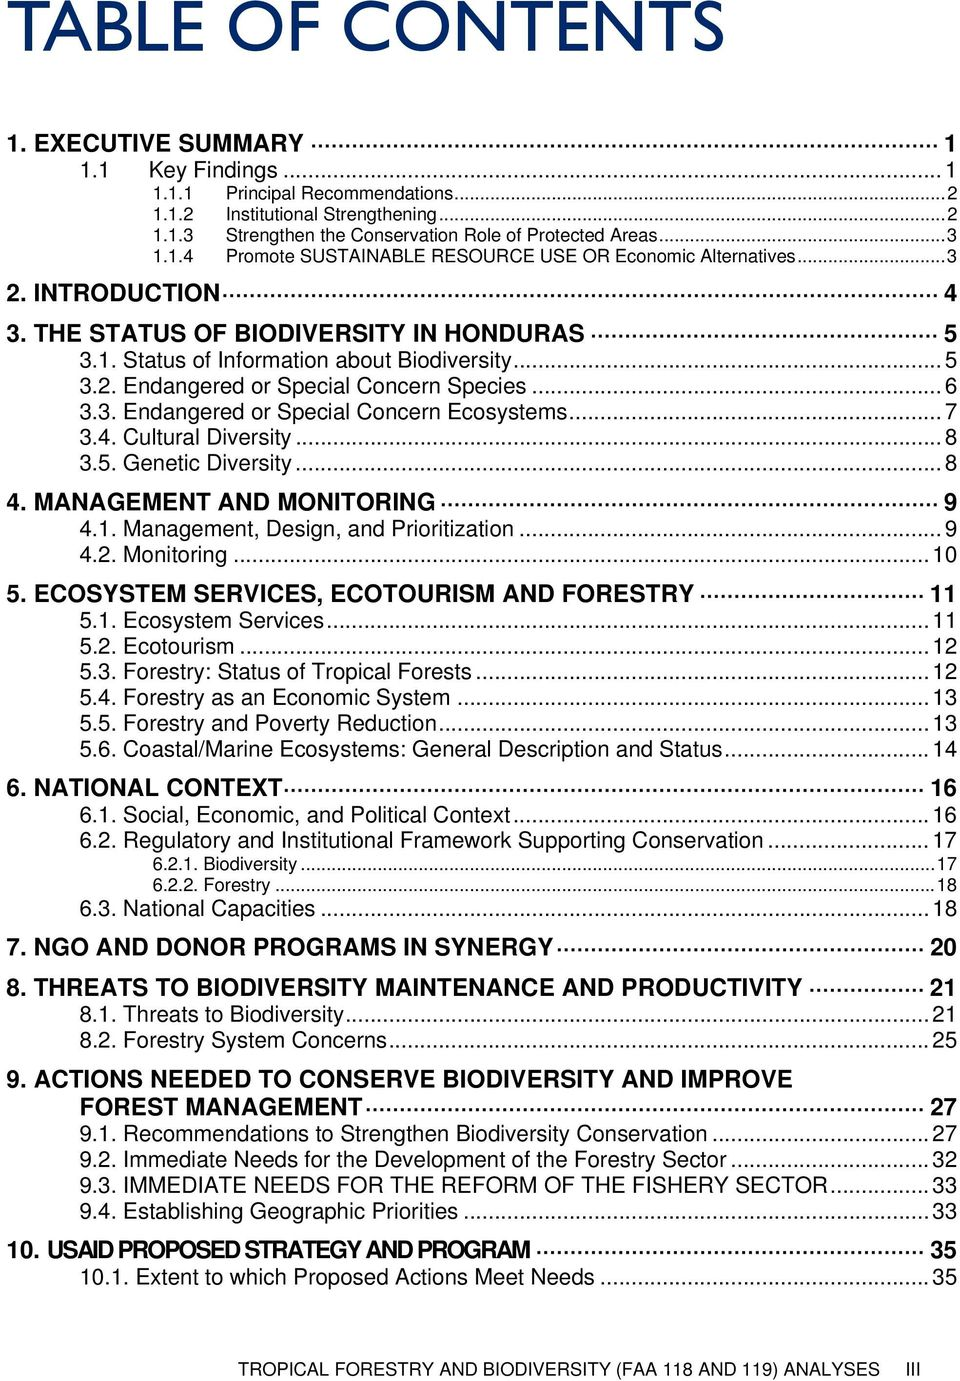 .. 6 3.3. Endangered or Special Concern Ecosystems... 7 3.4. Cultural Diversity... 8 3.5. Genetic Diversity... 8 4. MANAGEMENT AND MONITORING 9 4.1. Management, Design, and Prioritization... 9 4.2.